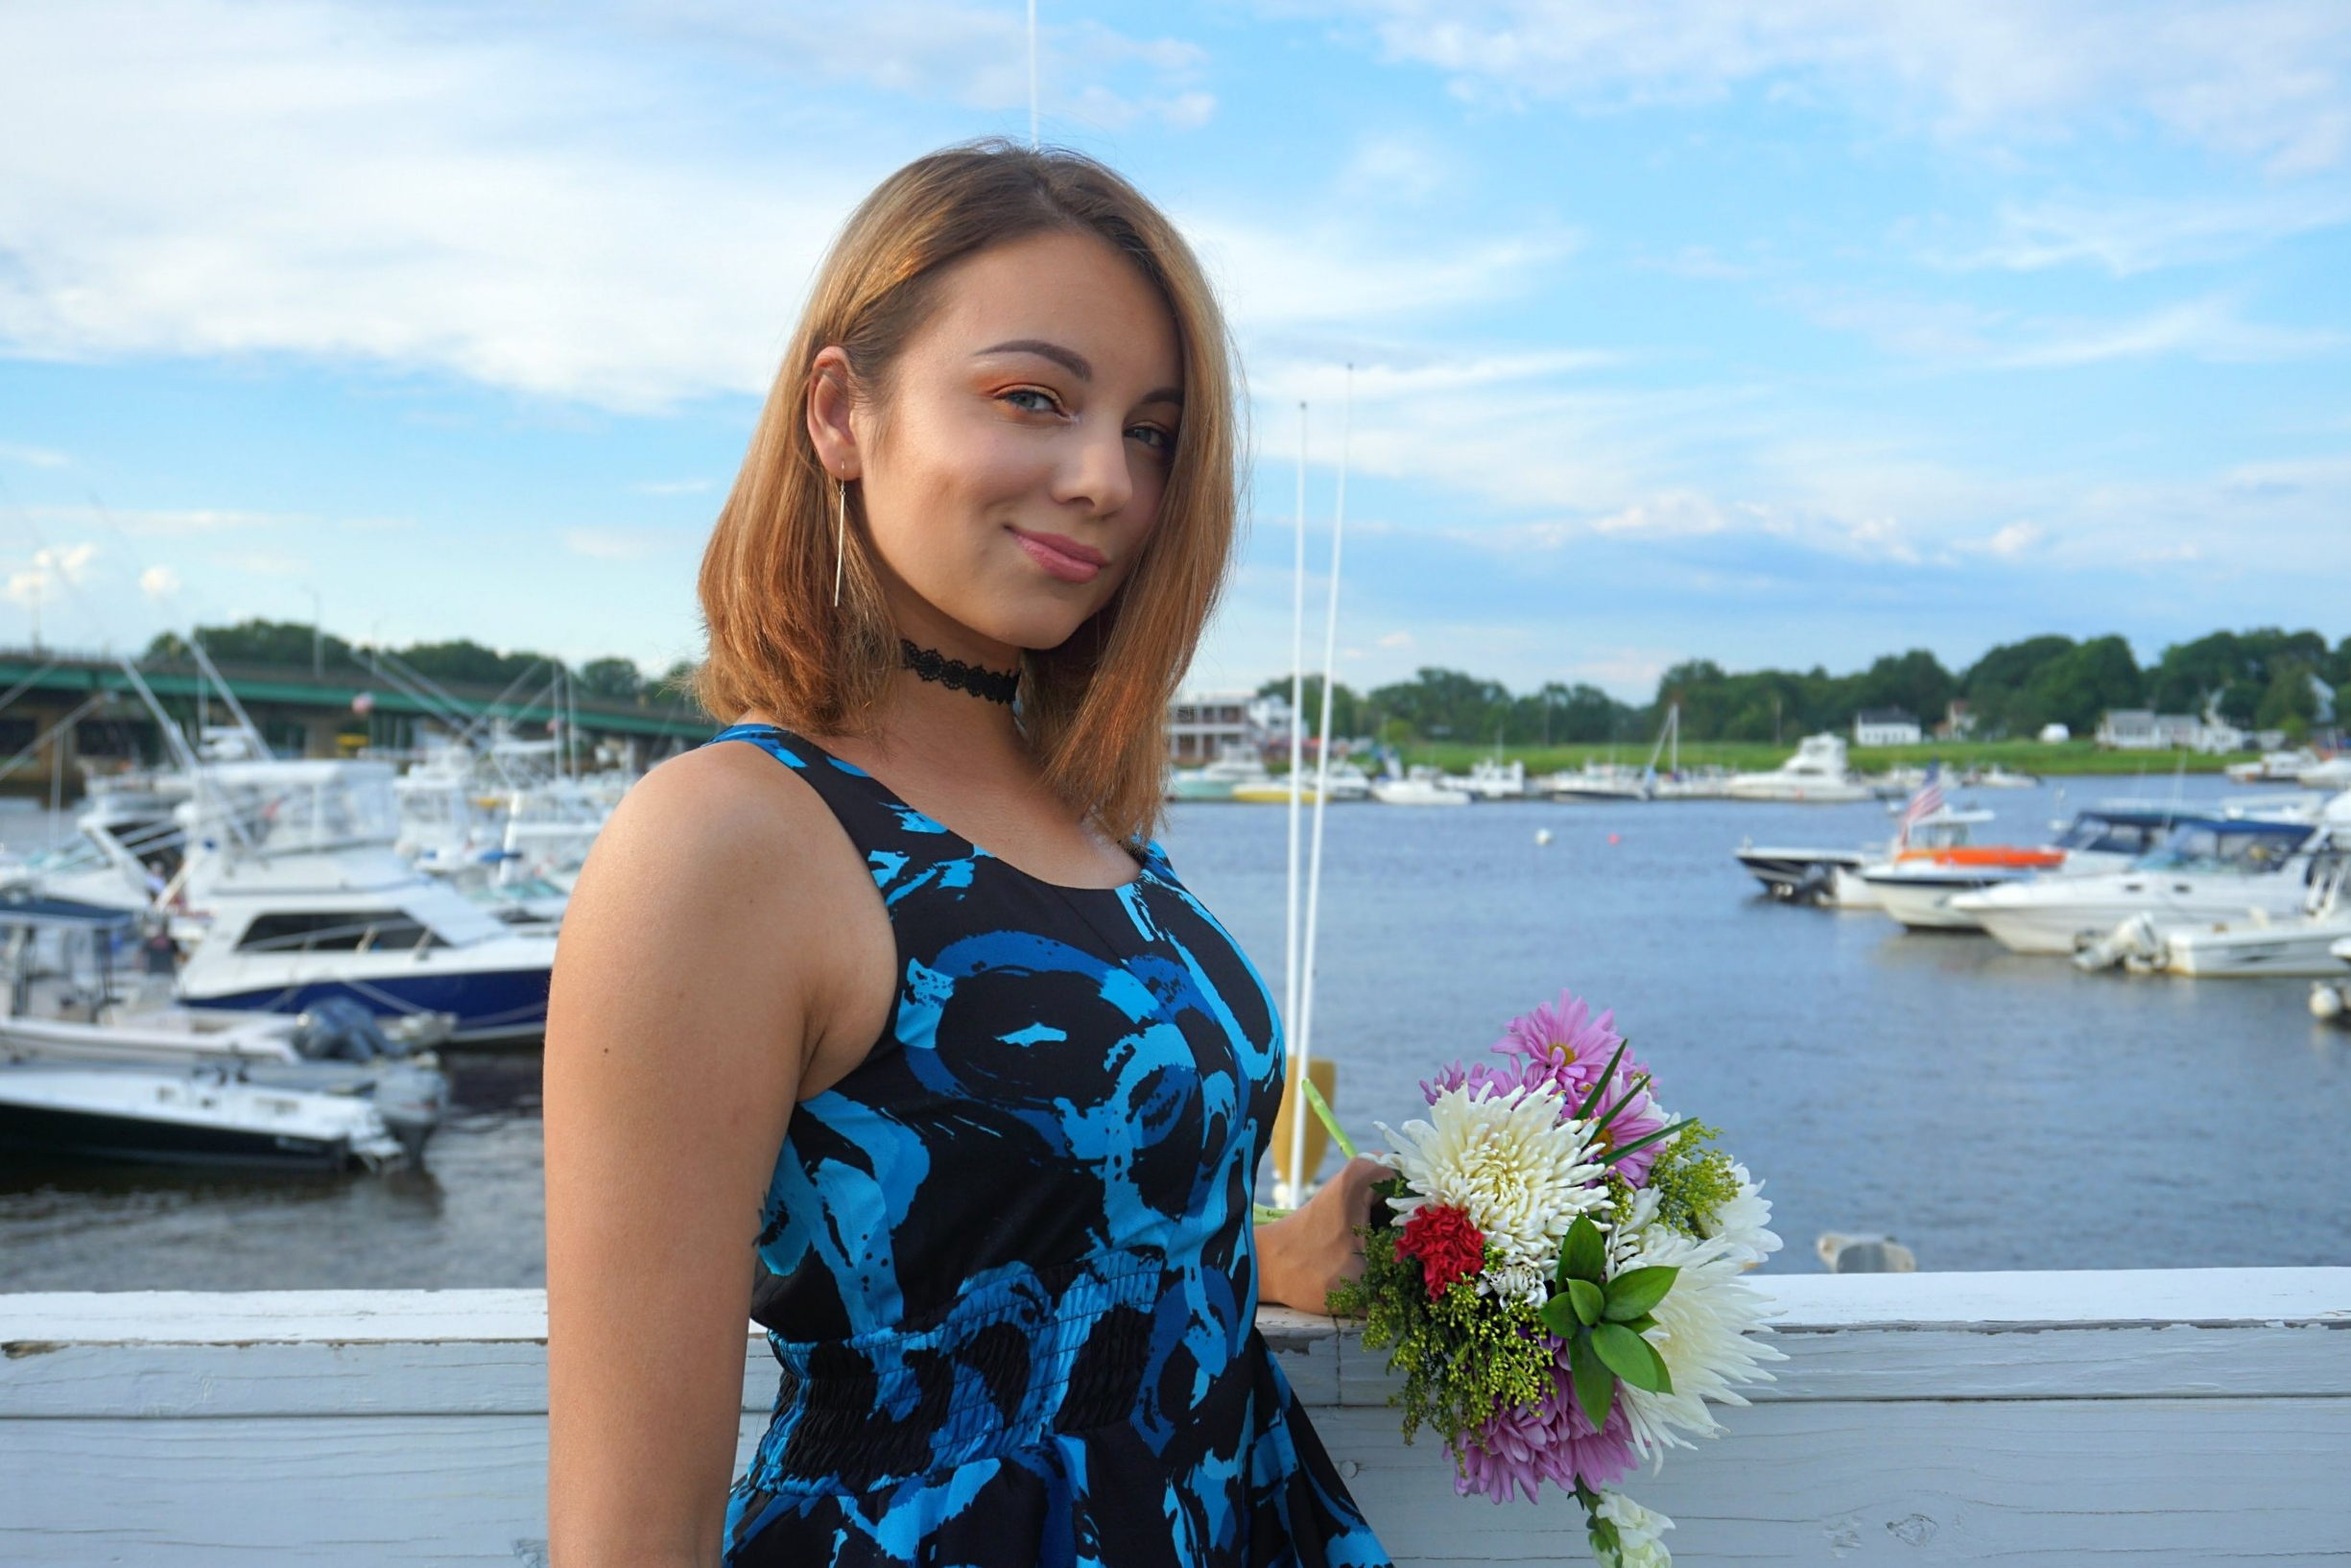 A blogger by the pier holding flowers.